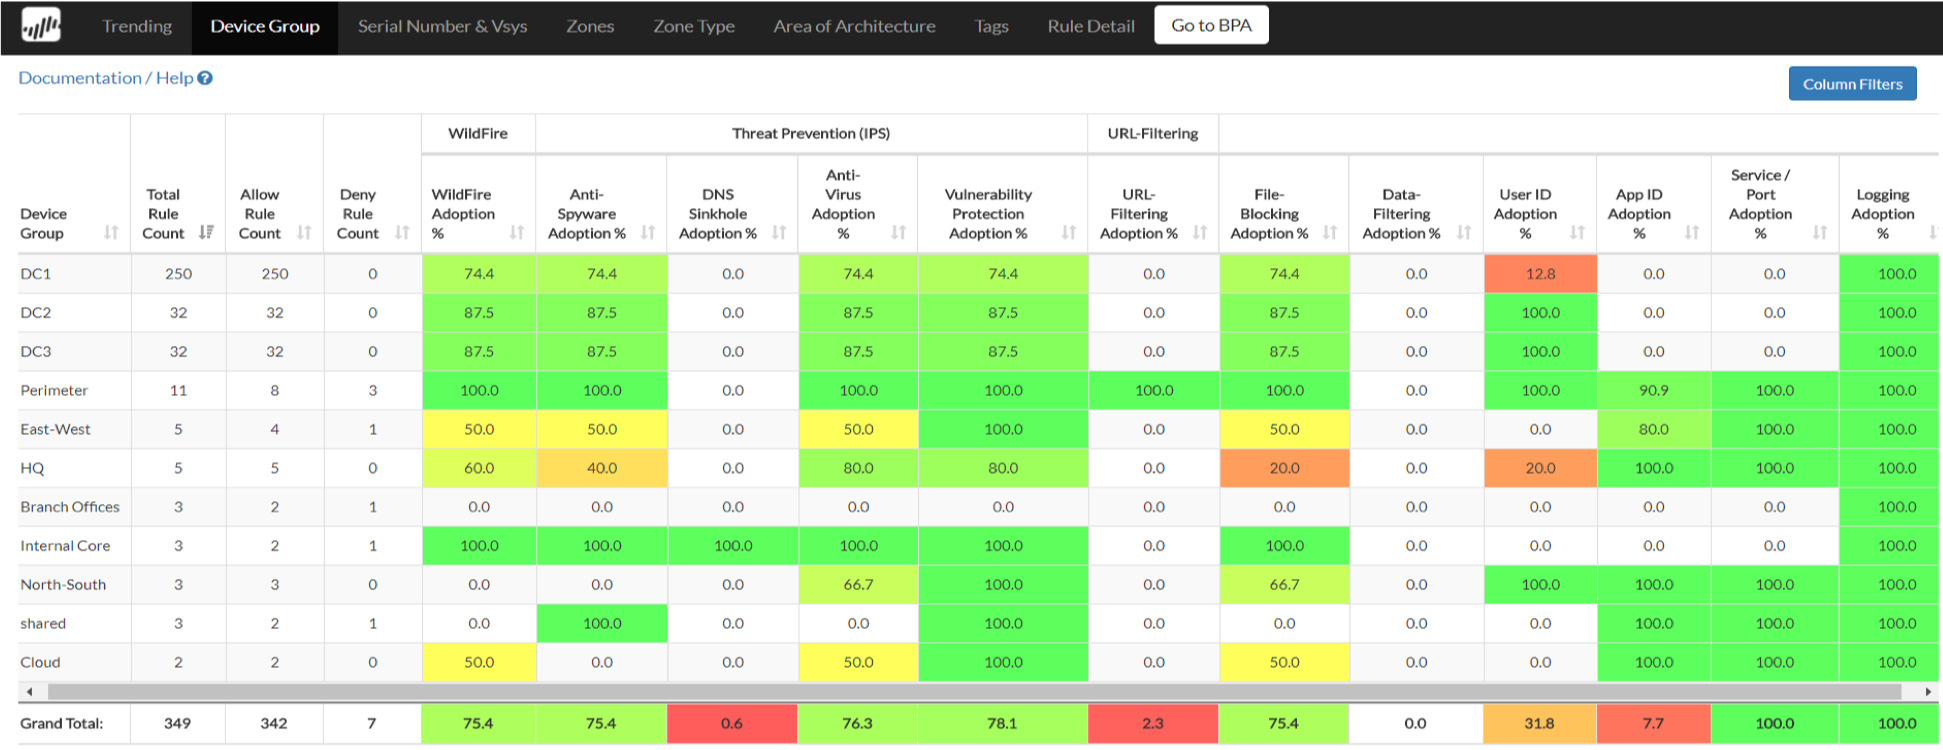 Palo Alto Networks Best Practice Assessment Tool (BPA)